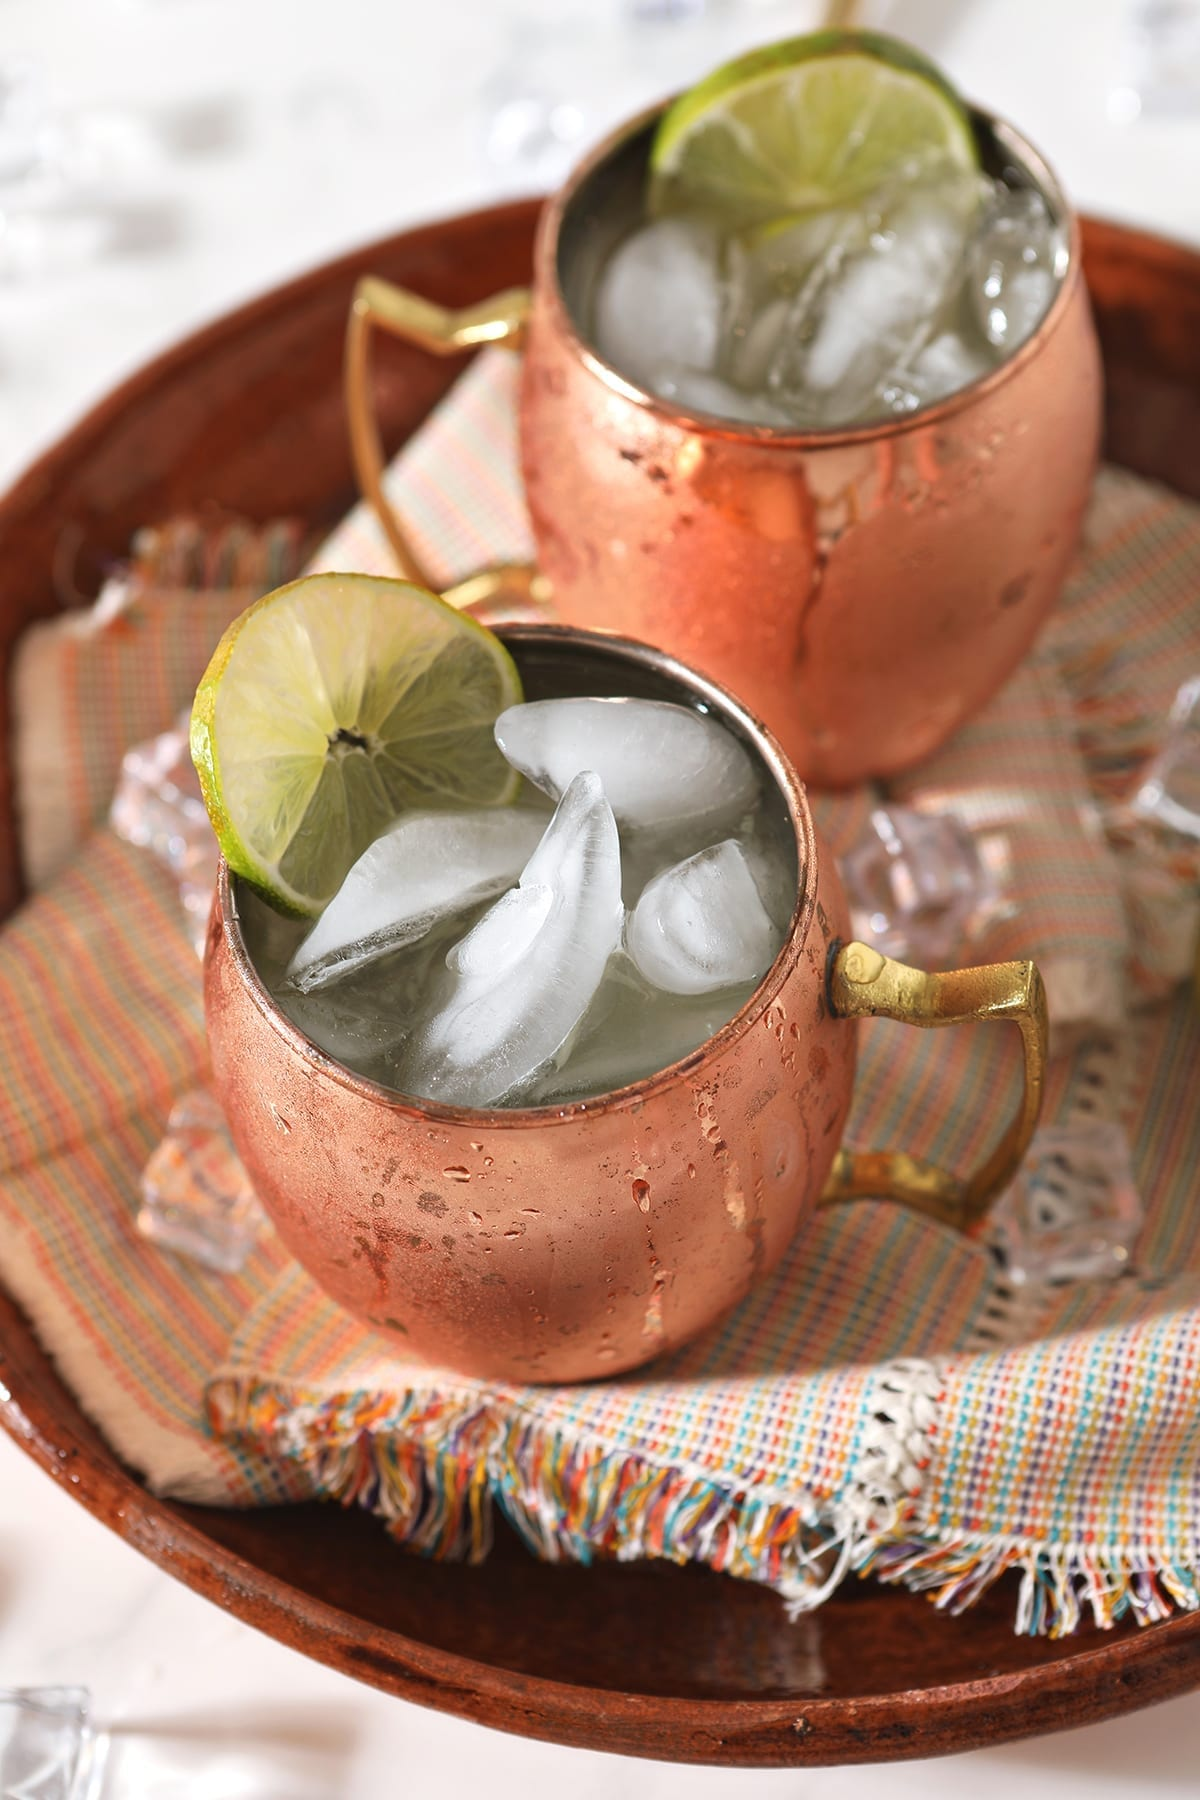 Overhead of two copper mule mugs holding liquor, on a platter